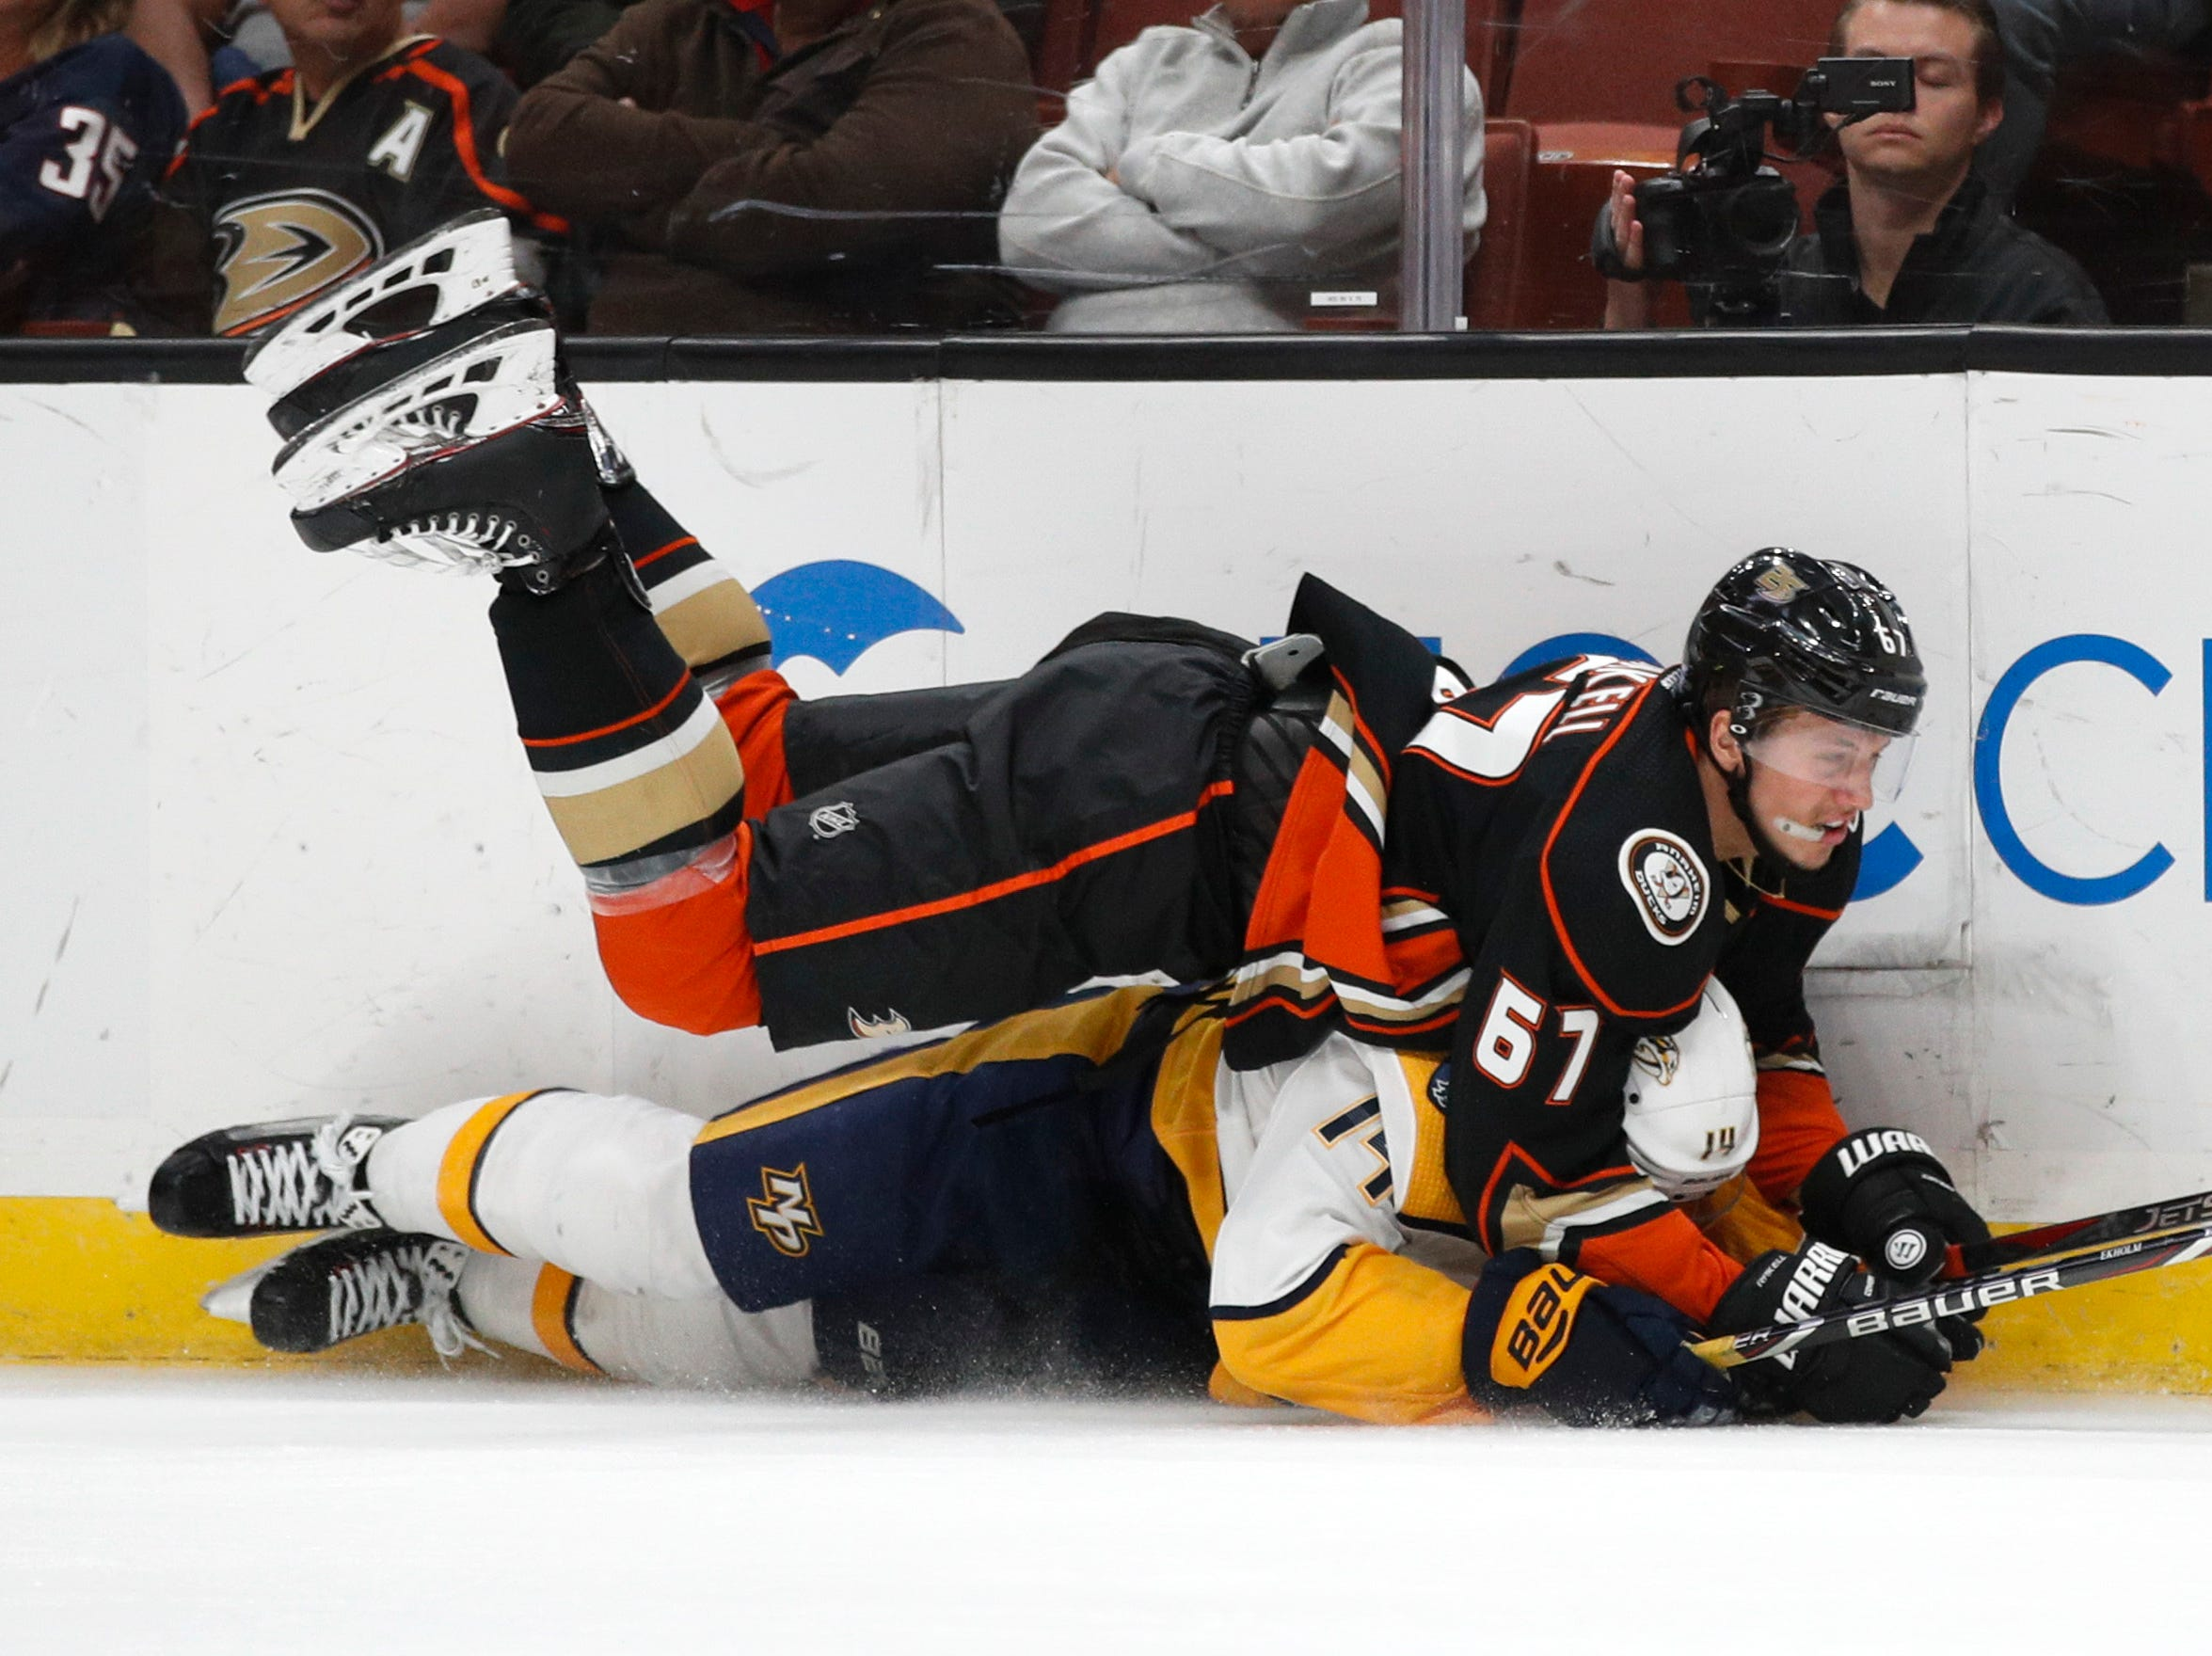 Anaheim Ducks' Rickard Rakell, top, of Sweden, and Nashville Predators' Mattias Ekholm, also of Sweden, fall to the ice as they fight for the puck during the second period of an NHL hockey game, Monday, Nov. 12, 2018, in Anaheim, Calif. (AP Photo/Jae C. Hong)